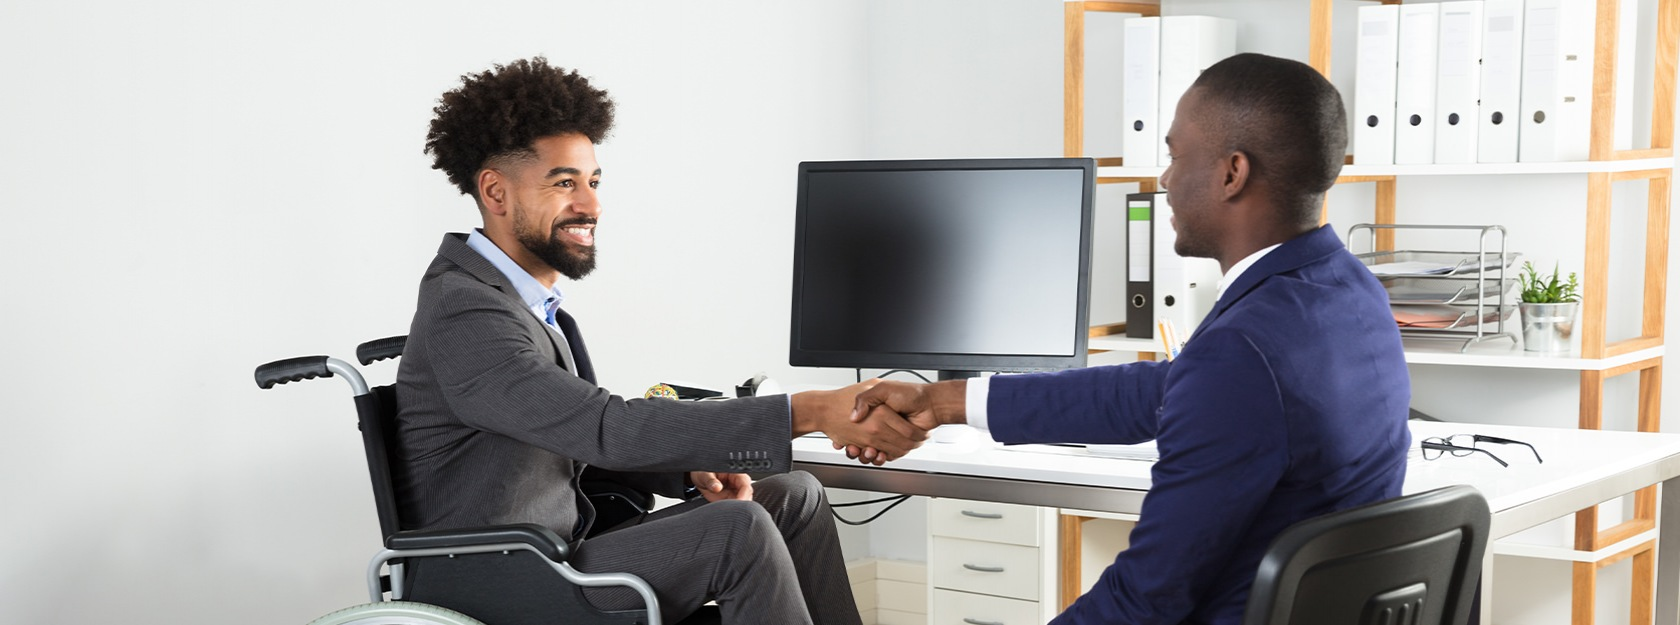 Men shaking hands in front of a desktop computer